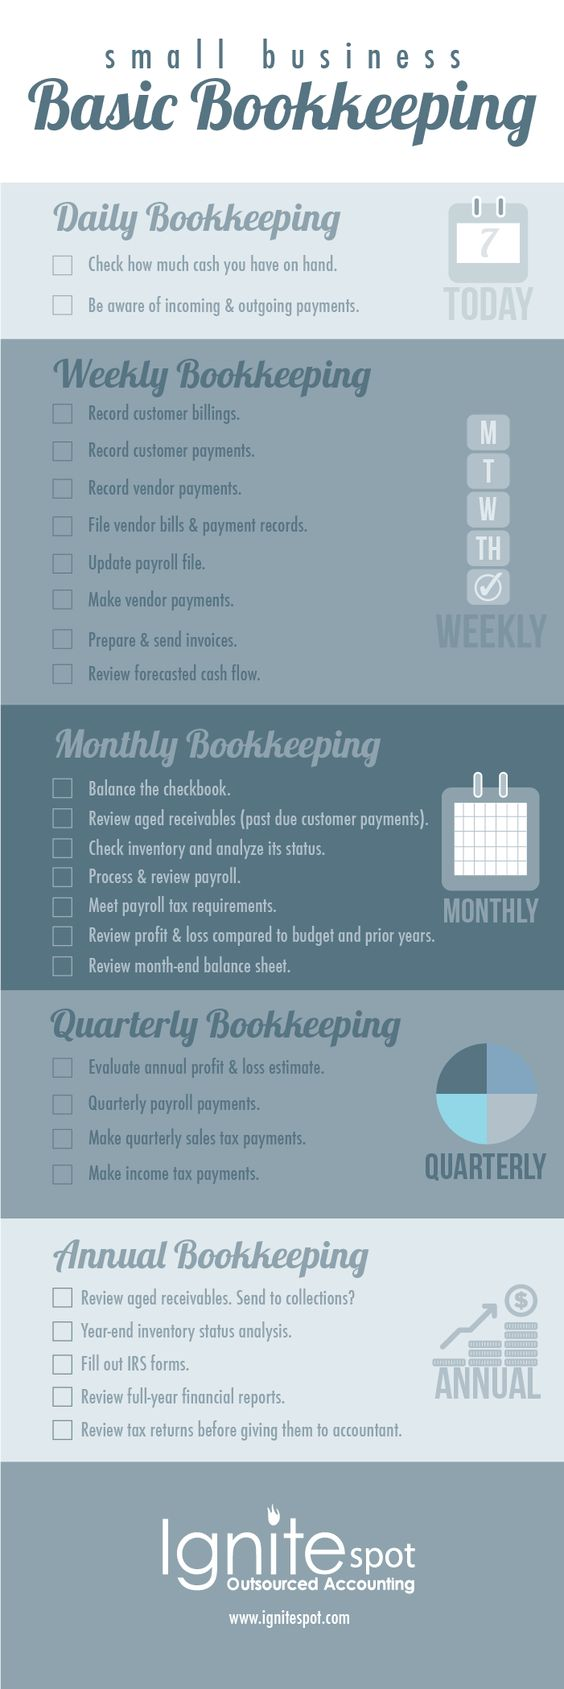 Infographic | Basic Bookkeeping for Small Businesses